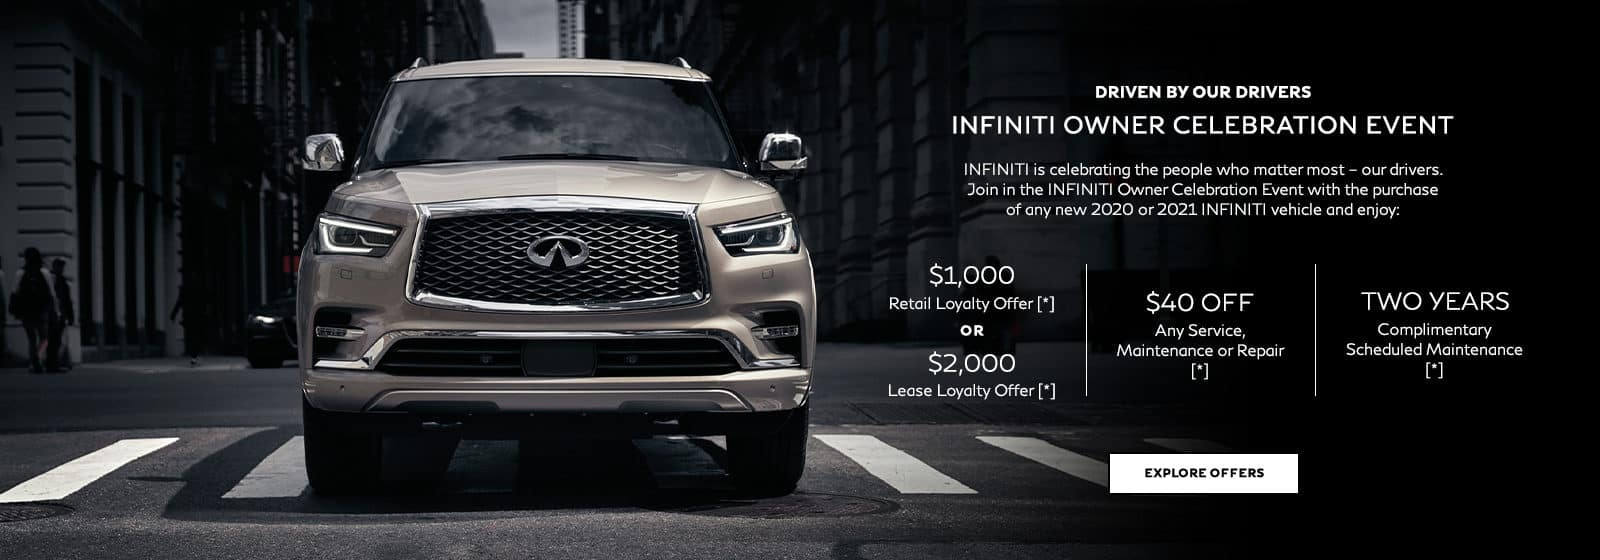 a. Driven by our drivers. INFINITI Owner Celebration Event. INFINITI is celebrating the people who matter most – our drivers. Join in the INFINITI Owner Celebration Event with the purchase of any new 2020 or 2021 INFINITI vehicle and enjoy these offers: $1,000 Retail Loyalty Offer OR $2,000 Lease Loyalty Offer, $40 off any service, maintenance or repair OR 50% off oil and filter change complete with a multi-point inspection, plus 2 years complimentary scheduled maintenance.